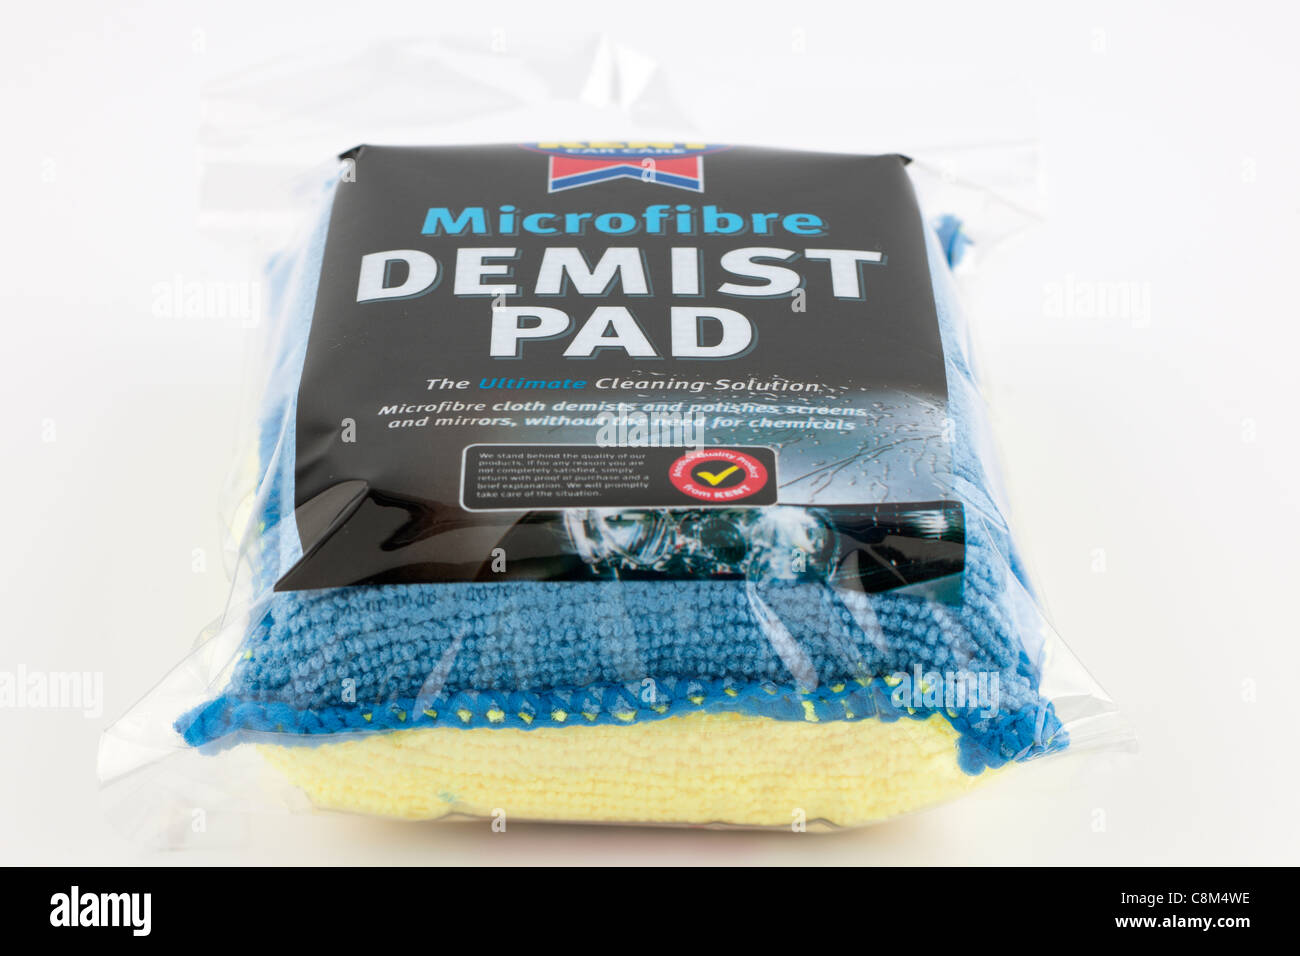 Kent car care Microfibre demist pad - Stock Image